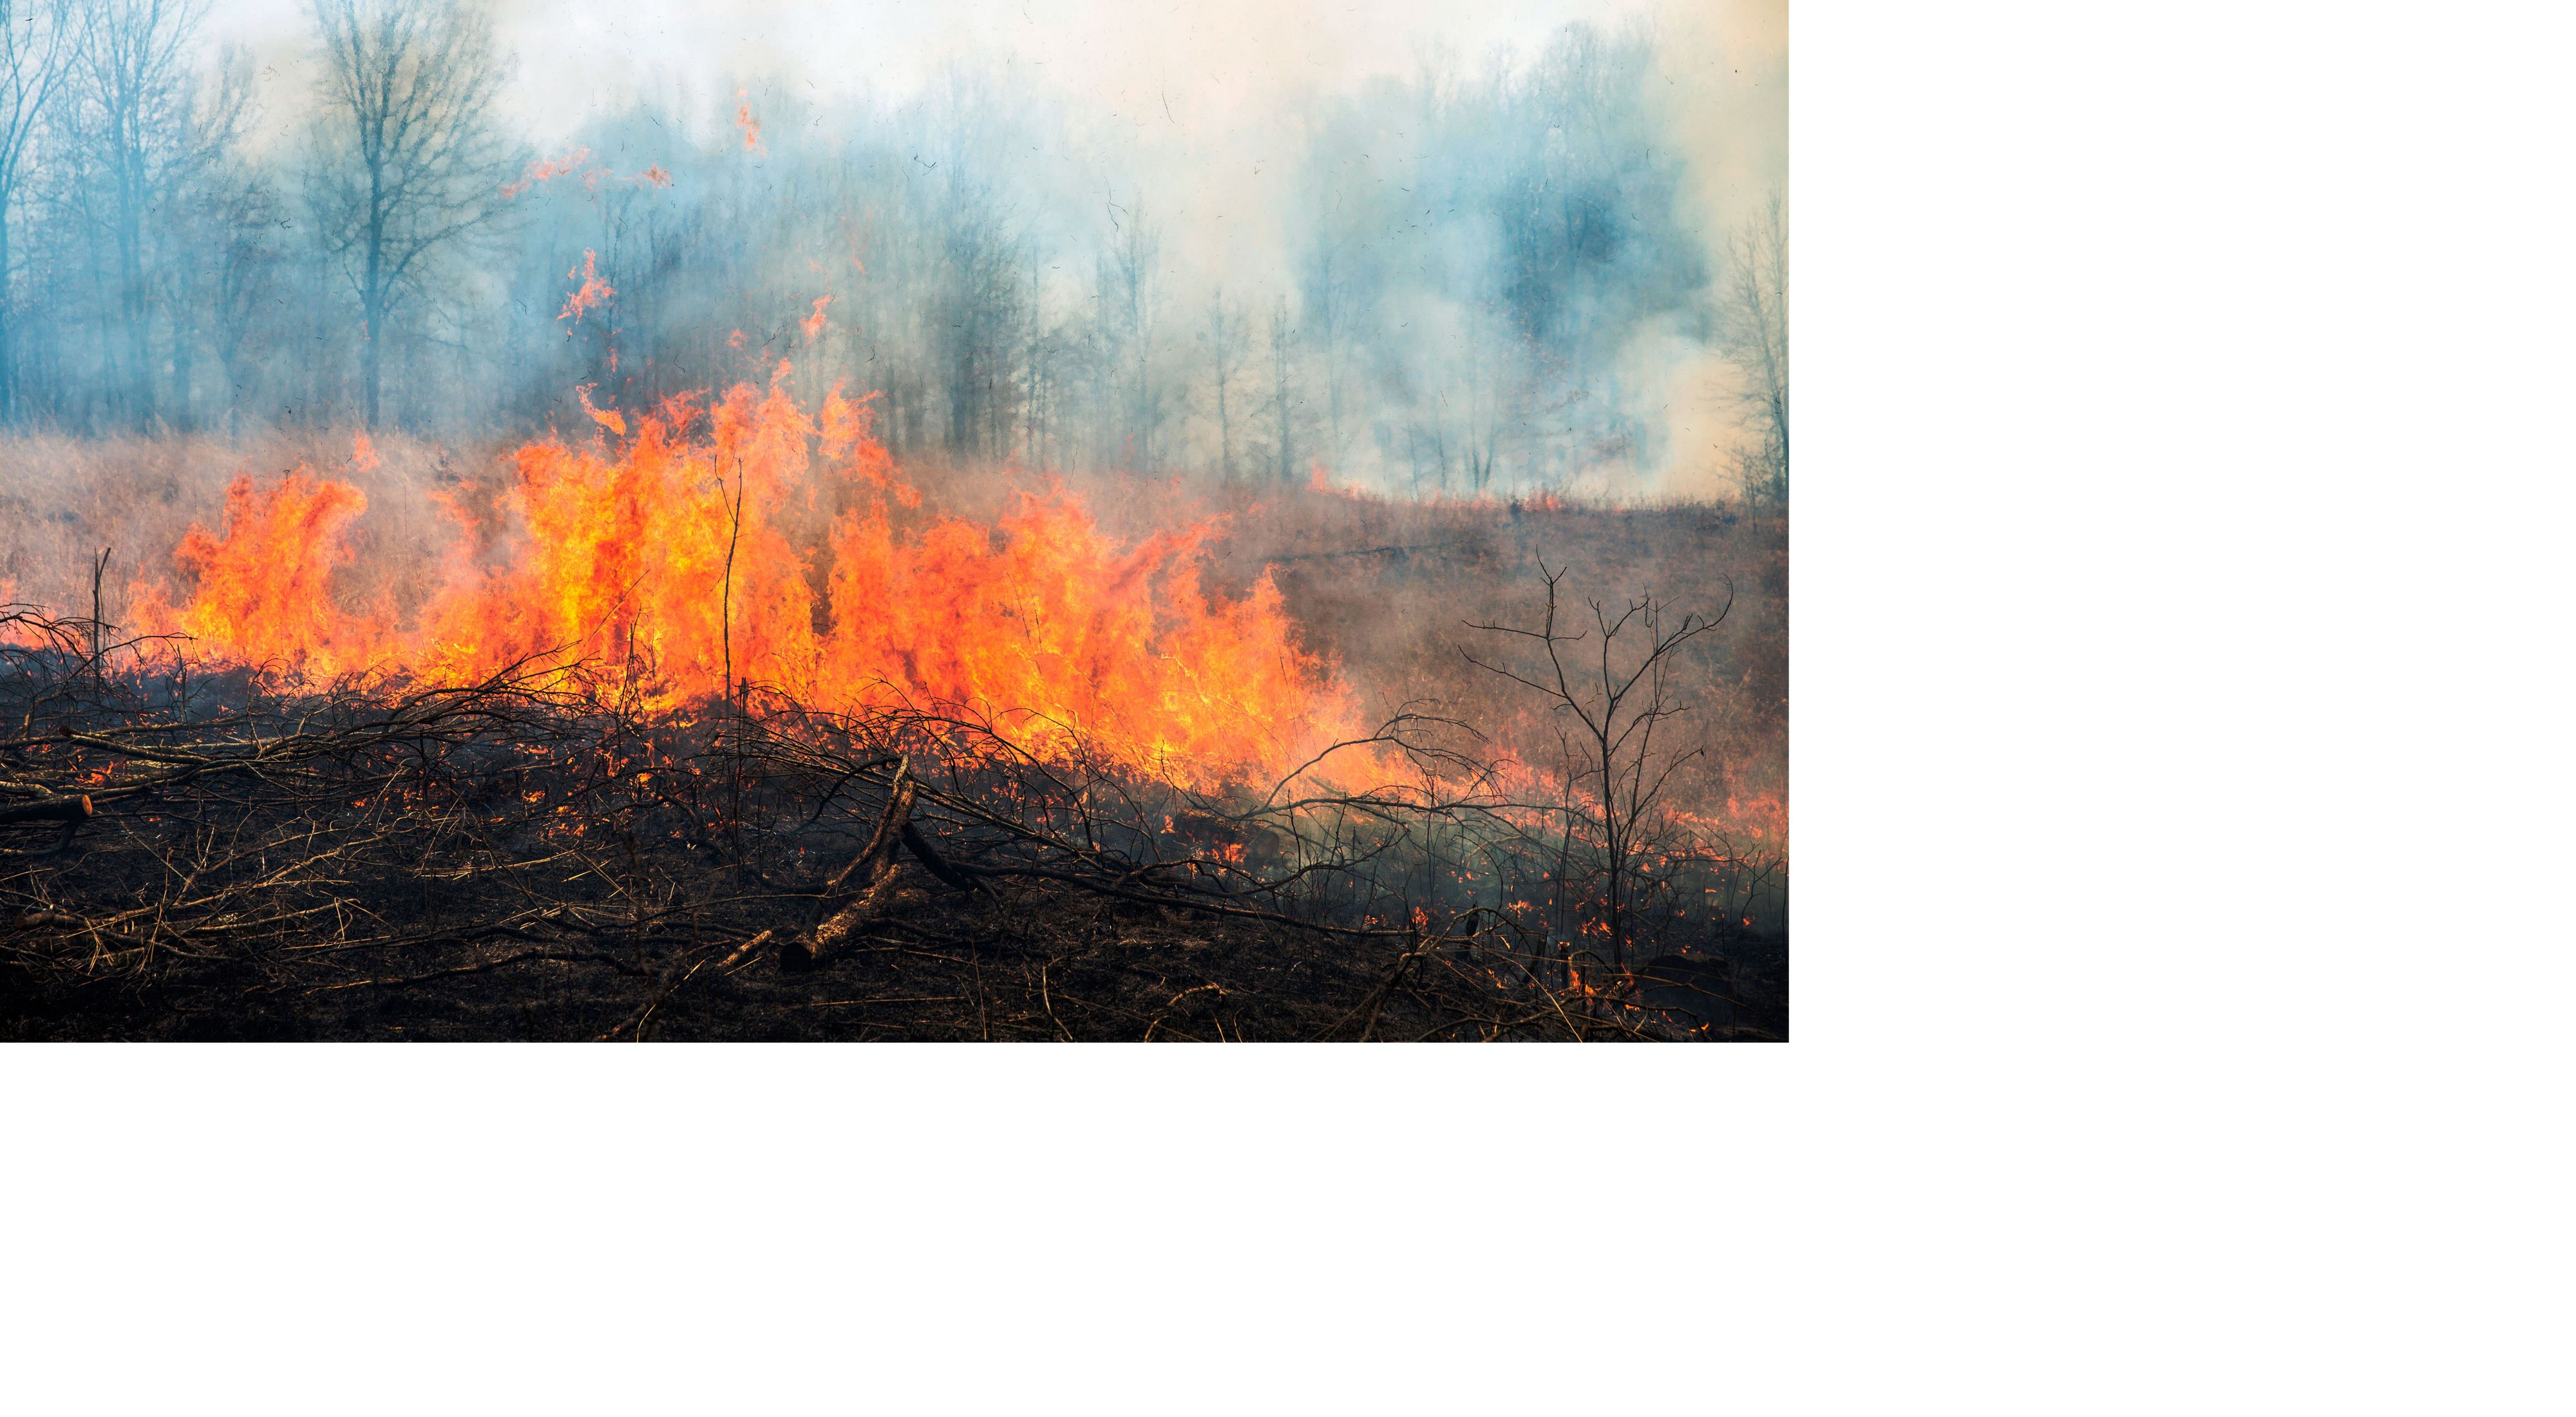 A controlled burn on a grassy area.